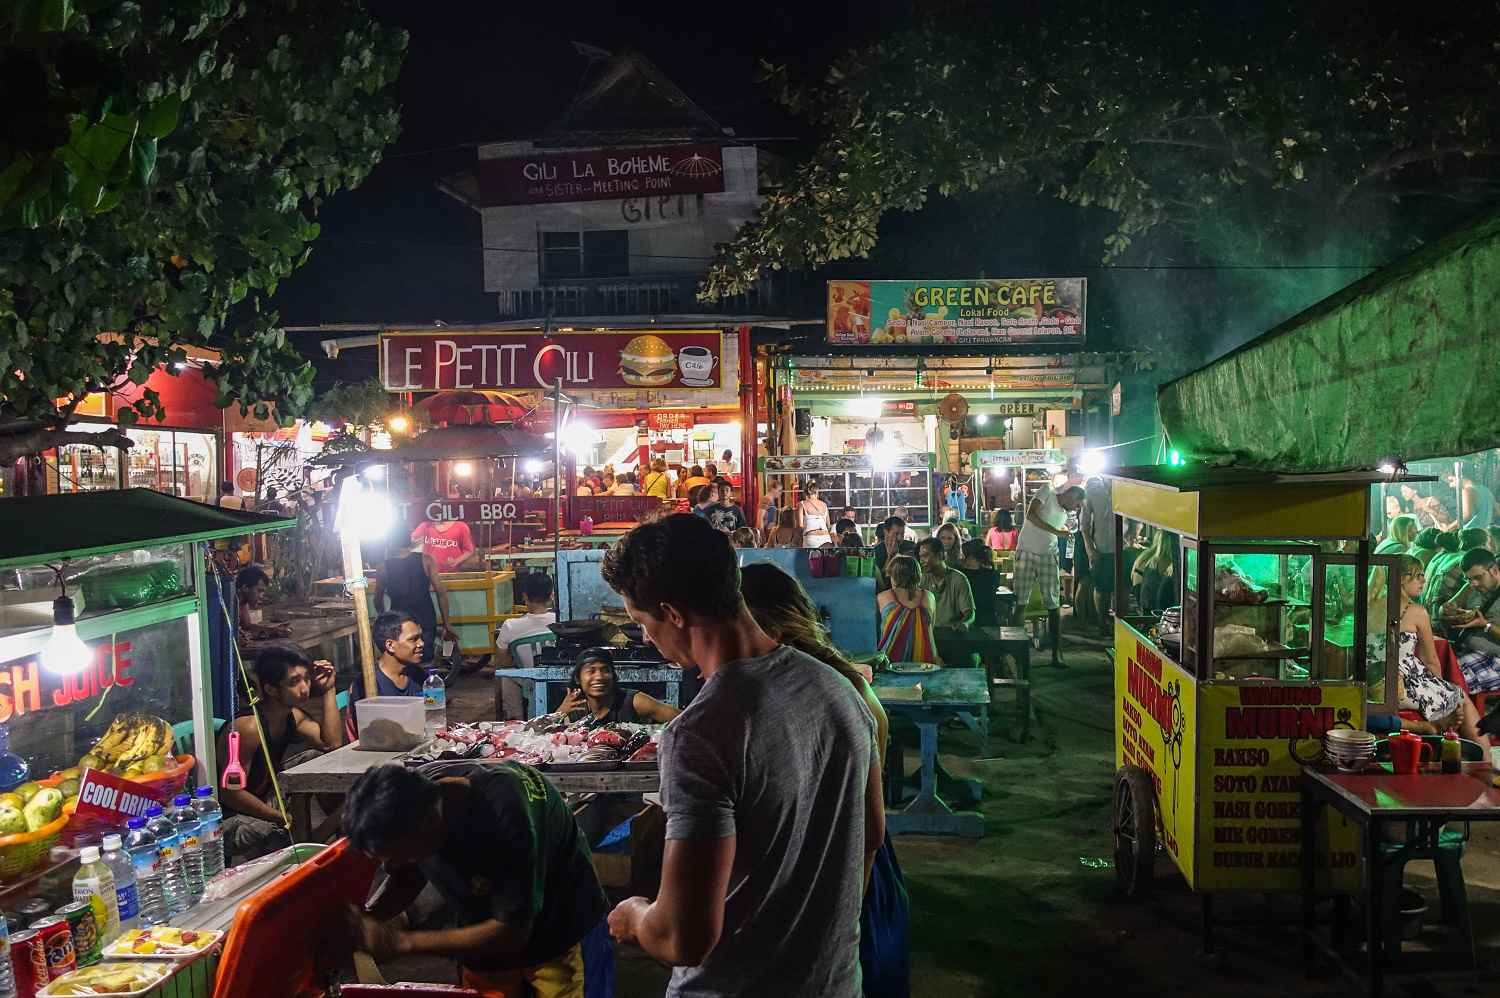 Night Market on Gili Trawangan.